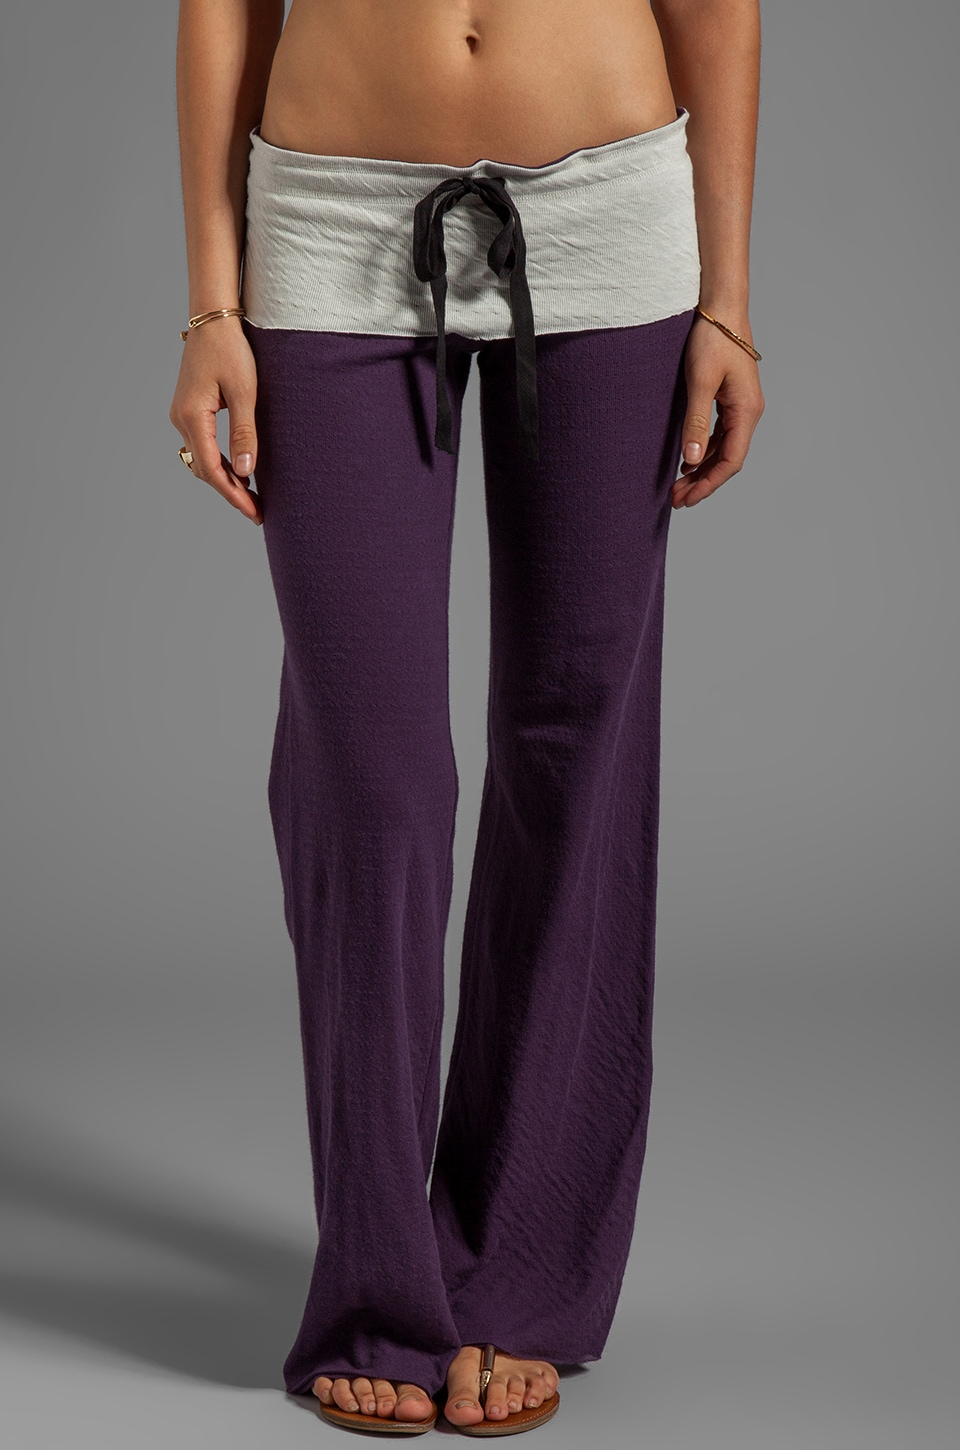 Tylie Double Face Wideleg Pant in Plum